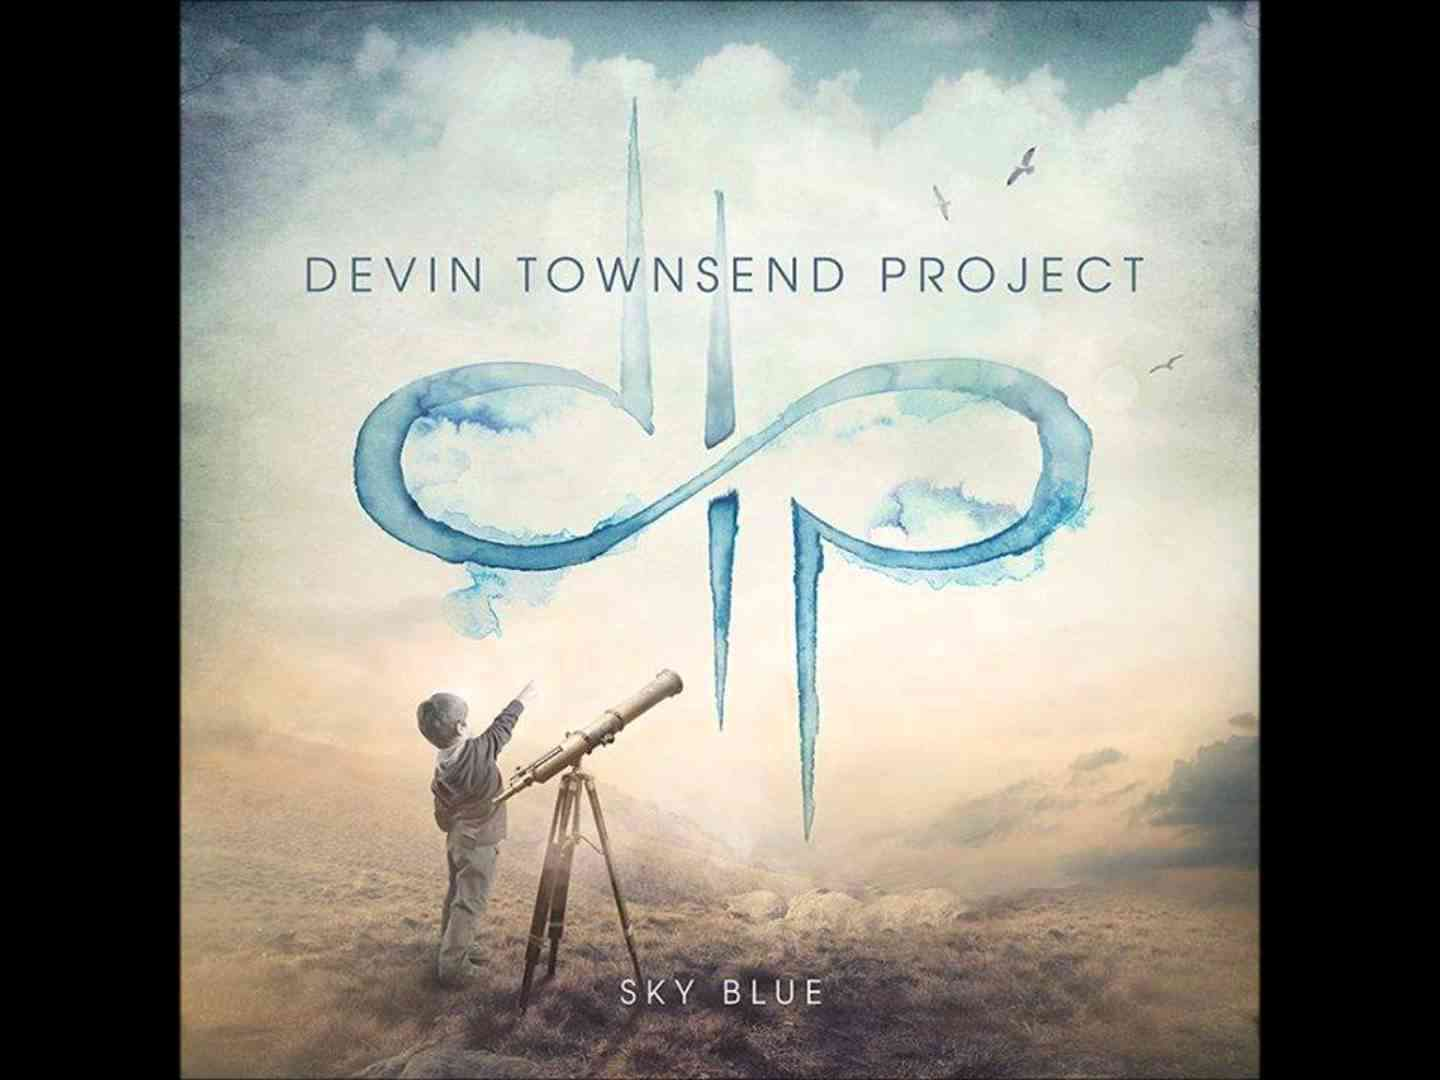 Devin Townsend - Sky Blue - YouTube